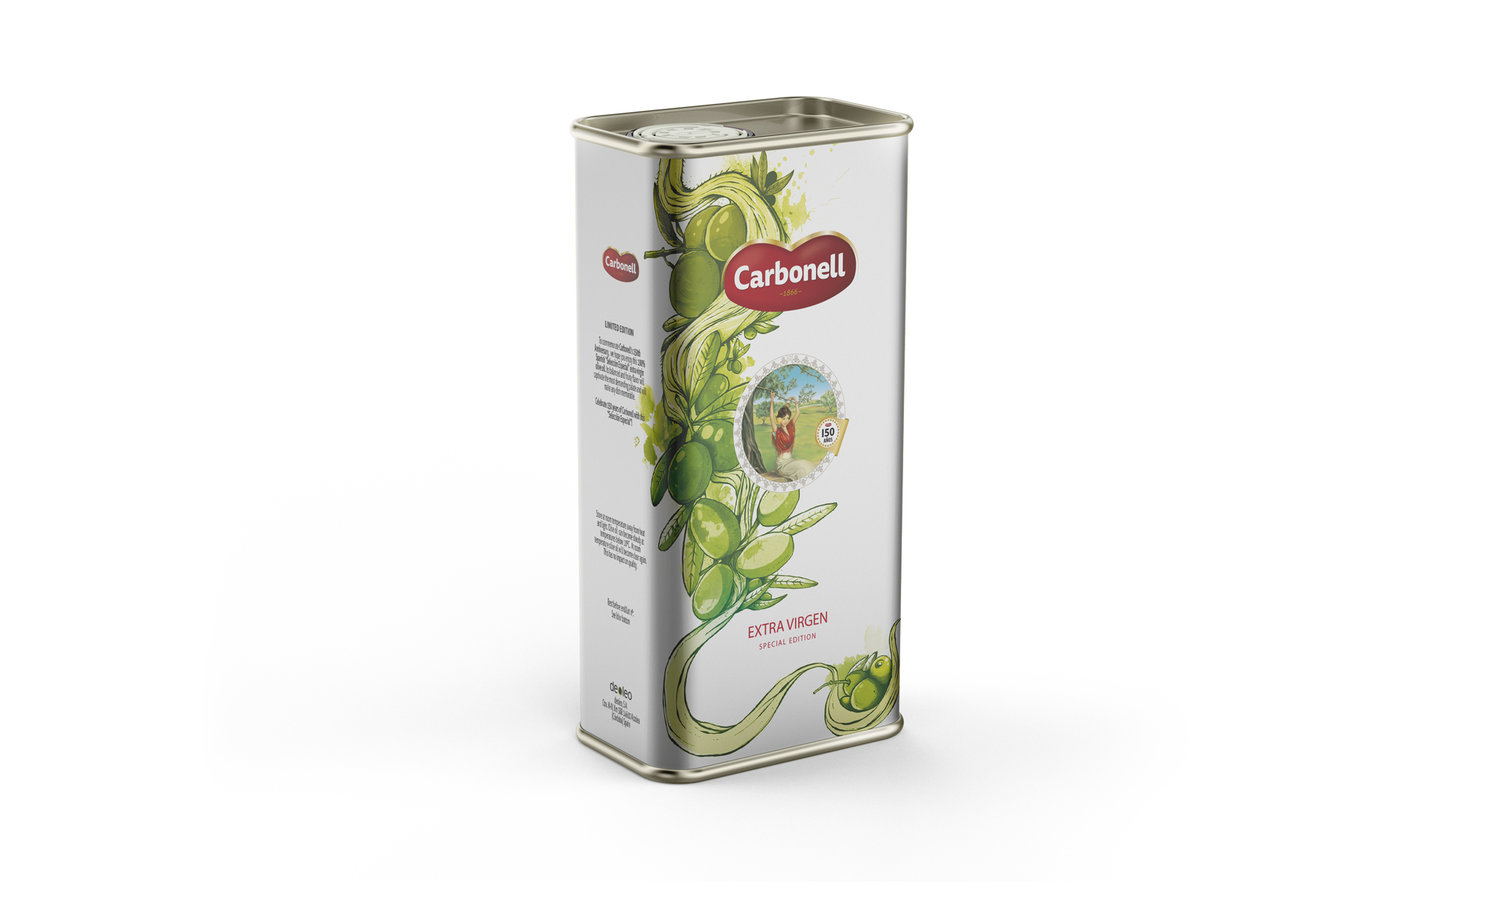 Packaging Design For Carbonell Spain